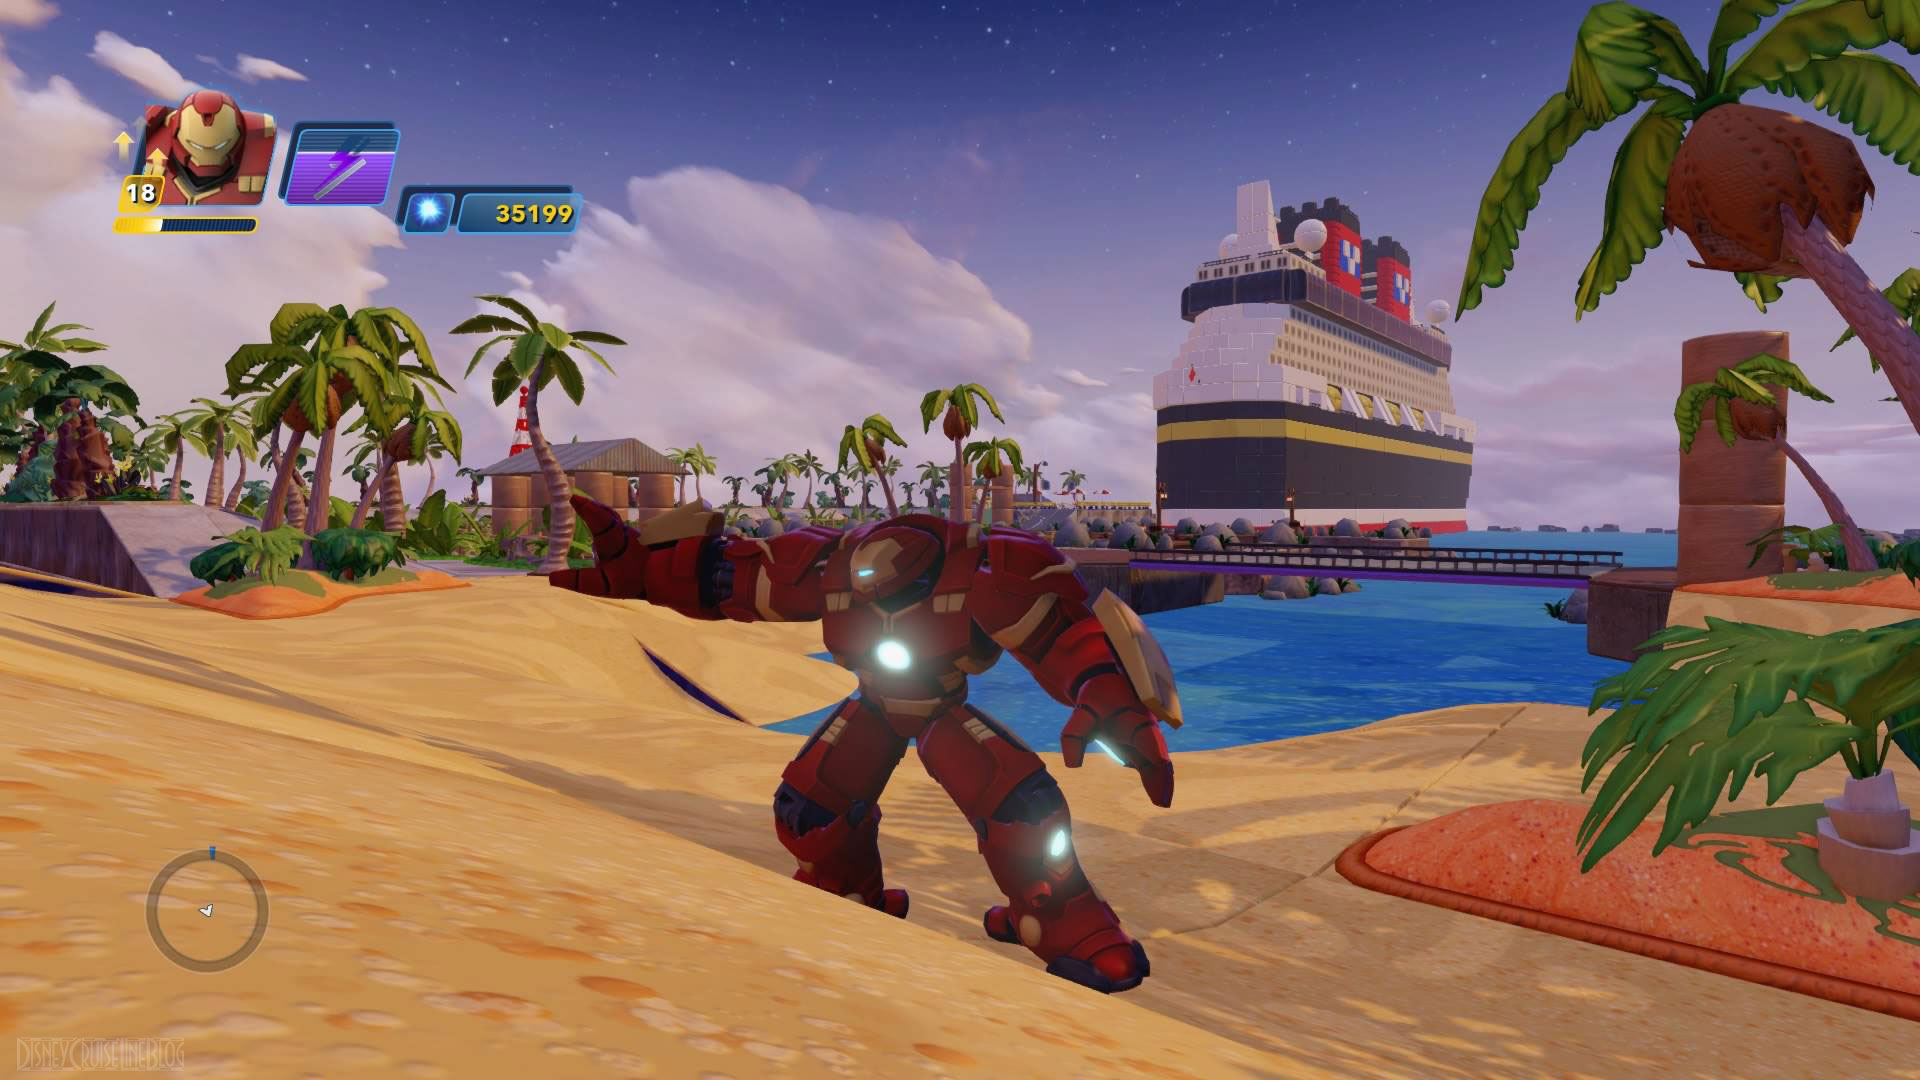 first look at the new disney dream: disney infinity play area in the